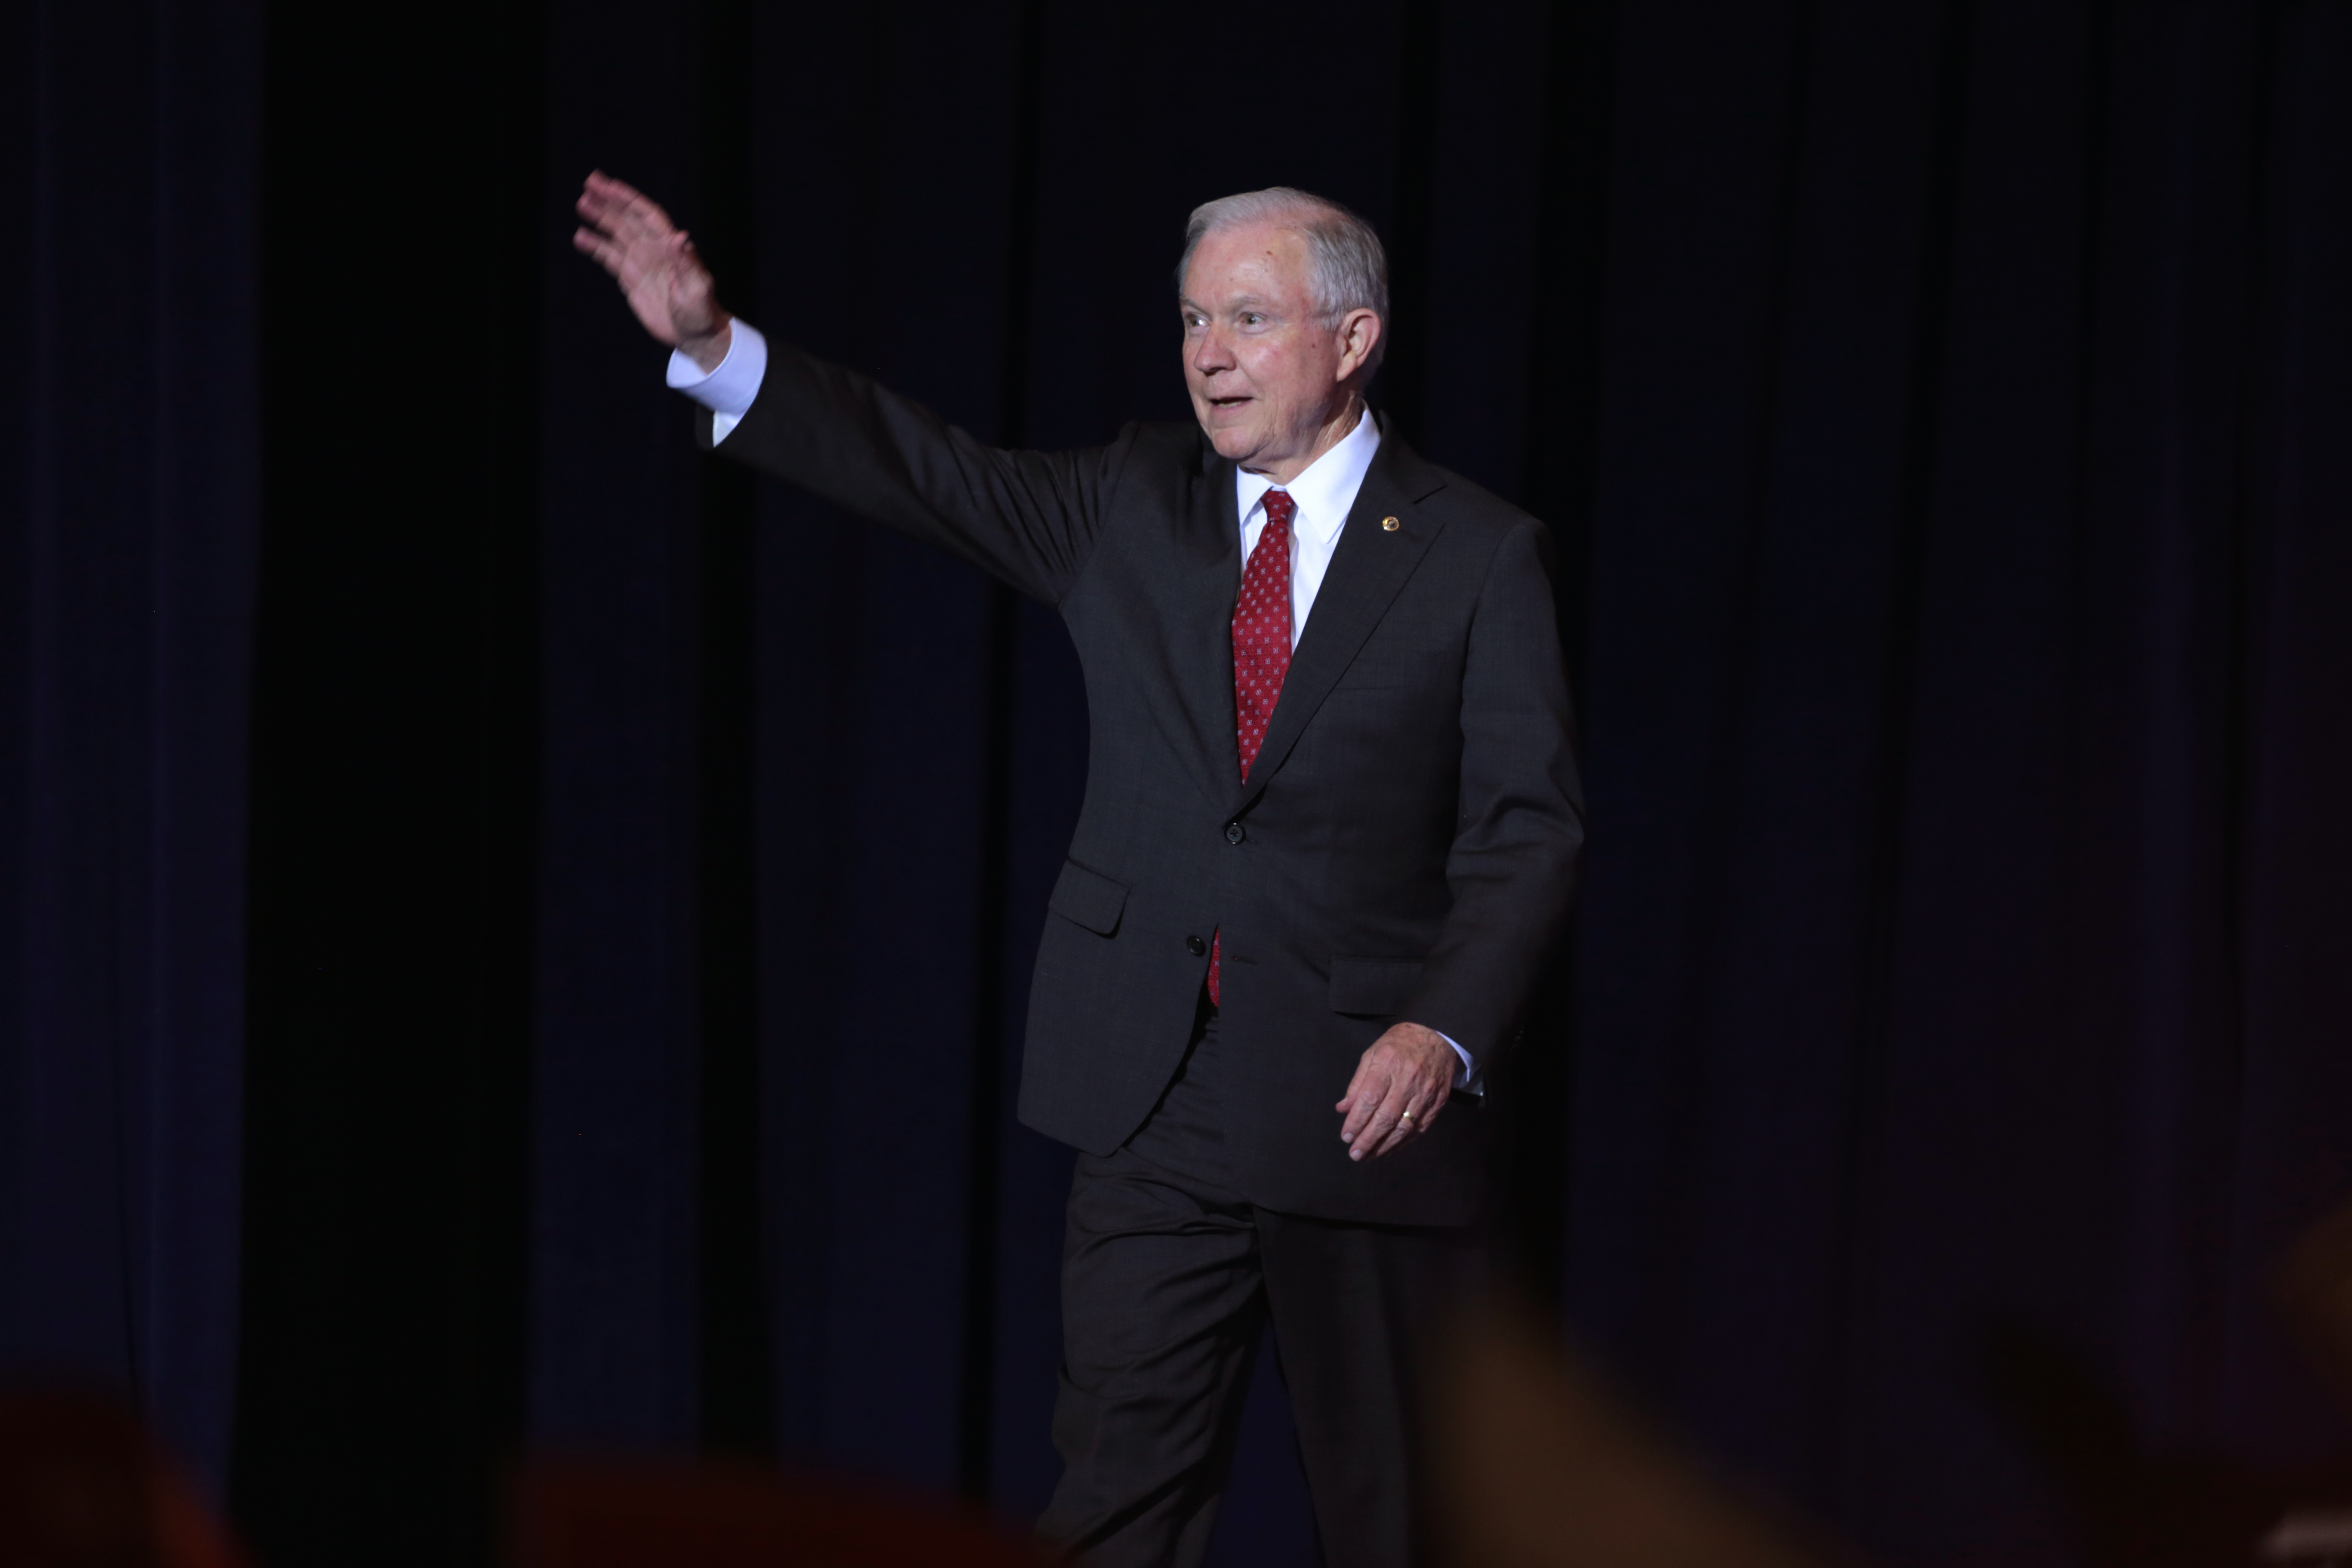 New attorney general Jeff Sessions 'not a fan of expanded use of marijuana' - Cannabis Life Network